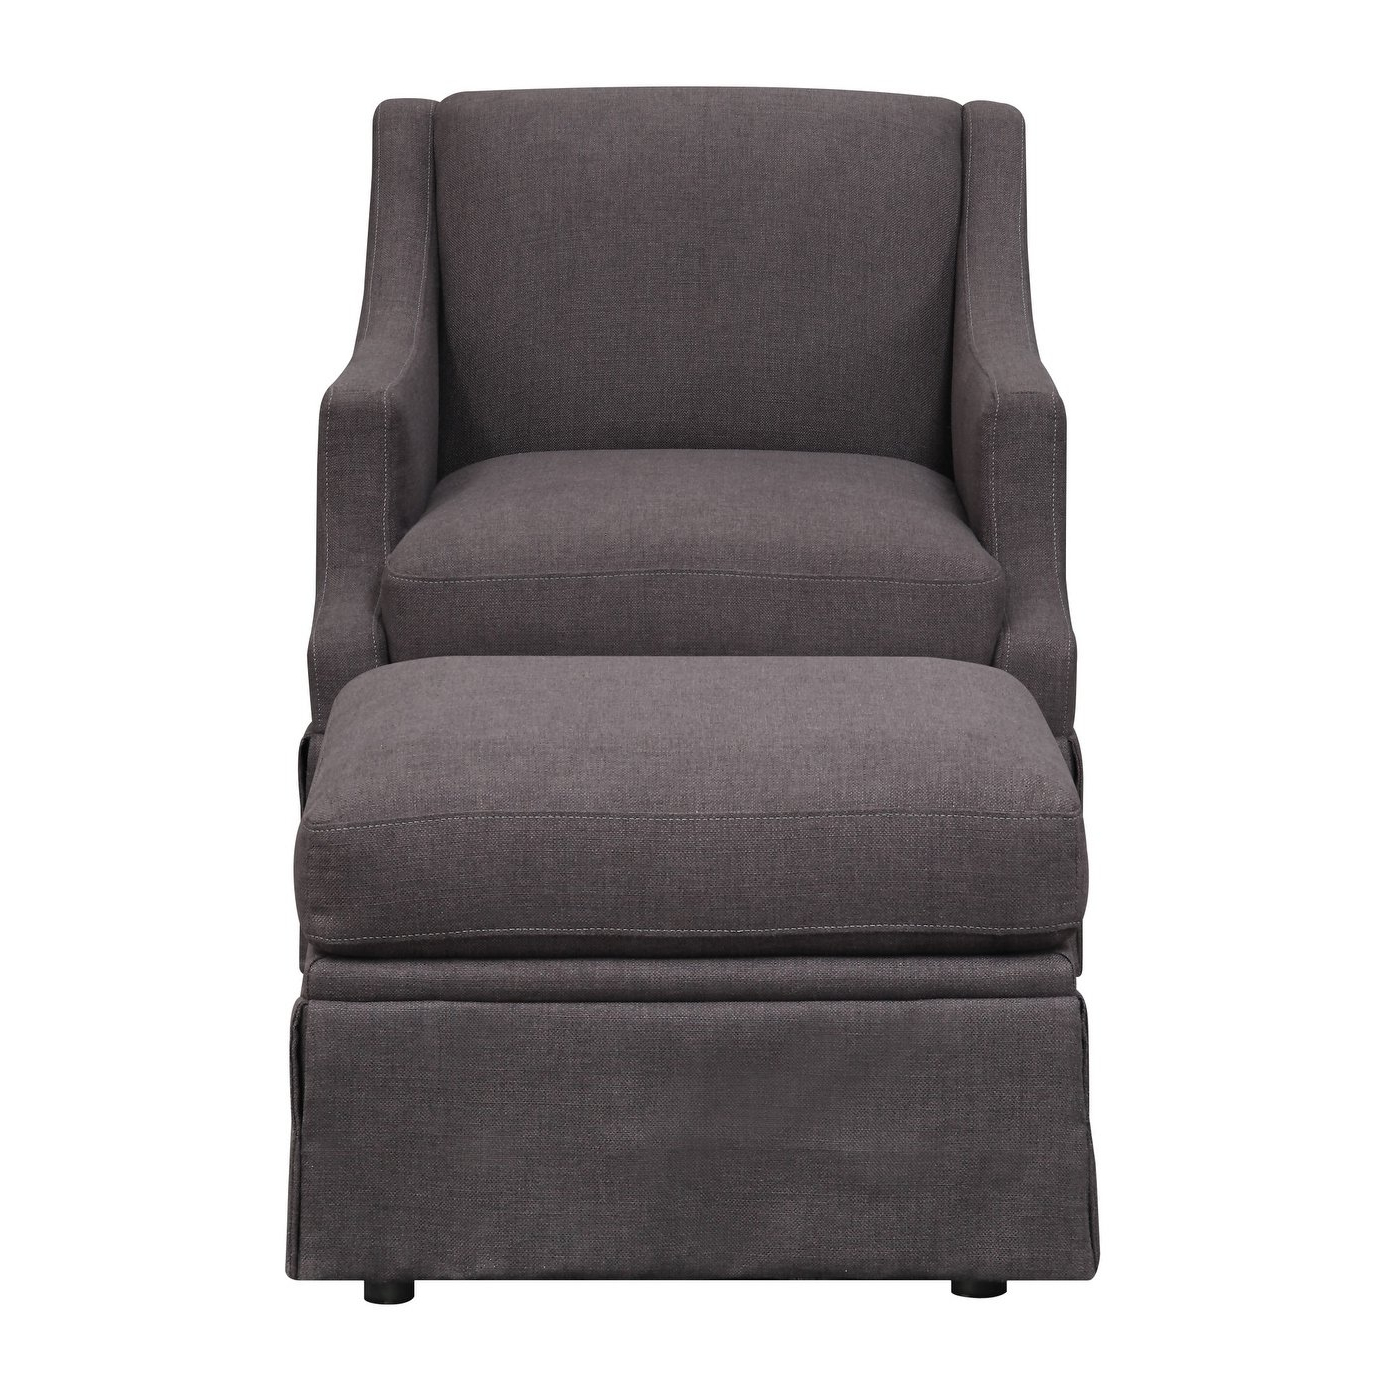 Shop Emerald Home Mckinley Charcoal Swivel Slip Chair And Ottoman With Regard To Most Up To Date Charcoal Swivel Chairs (View 19 of 20)